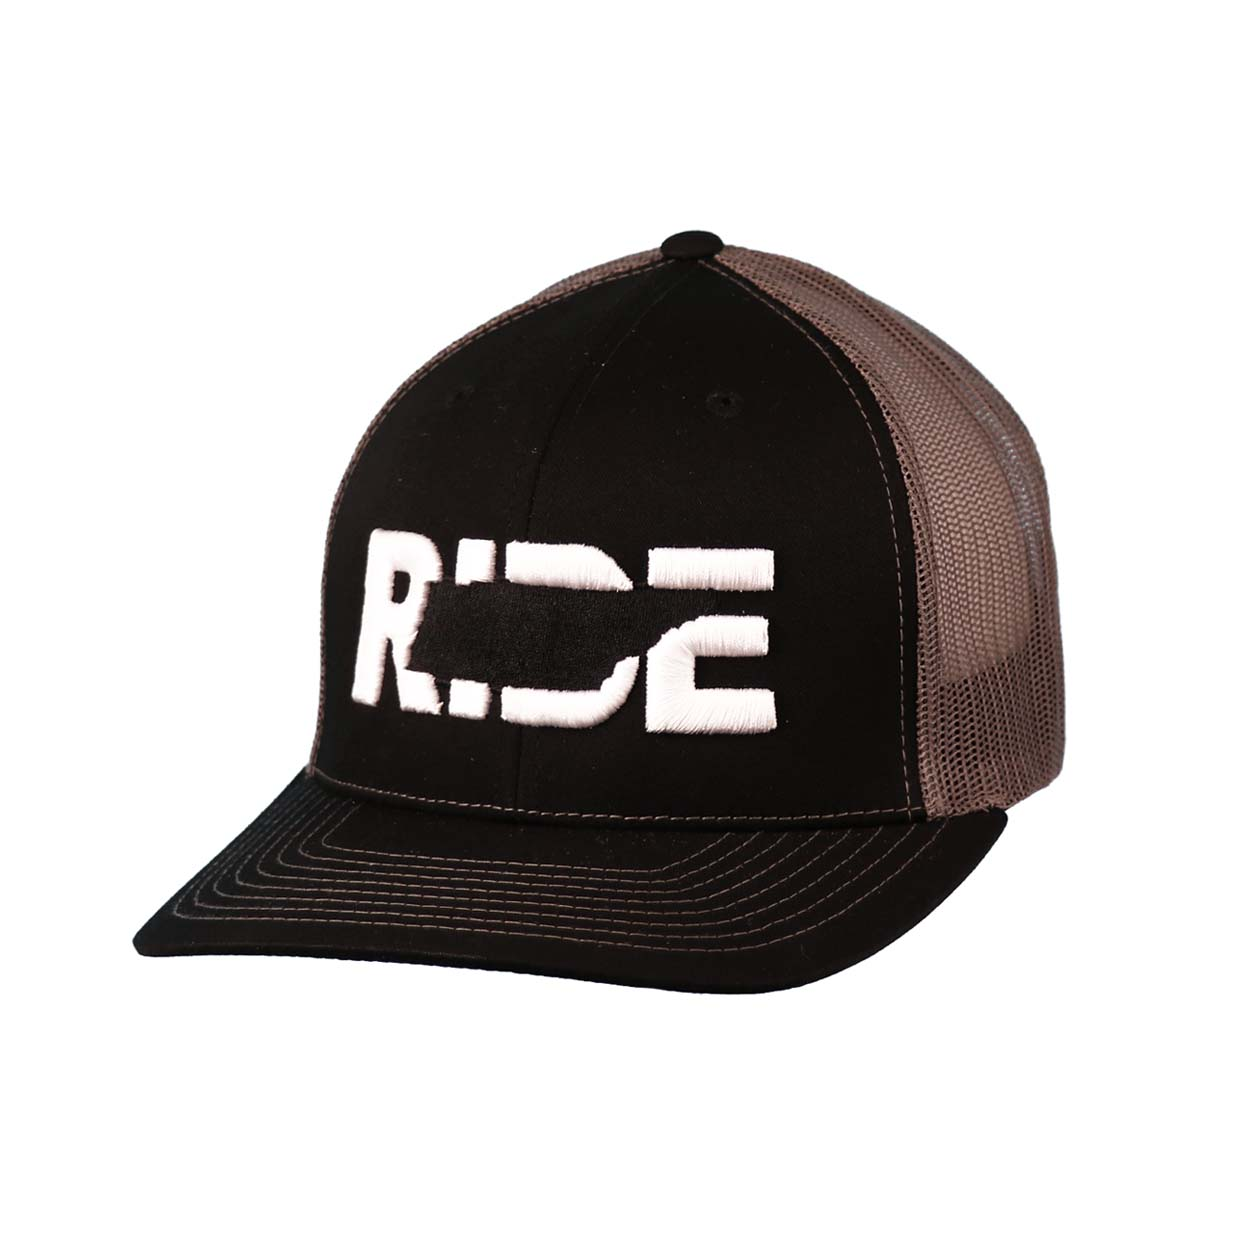 Ride Tennessee Classic Embroidered Snapback Trucker Hat Black/White